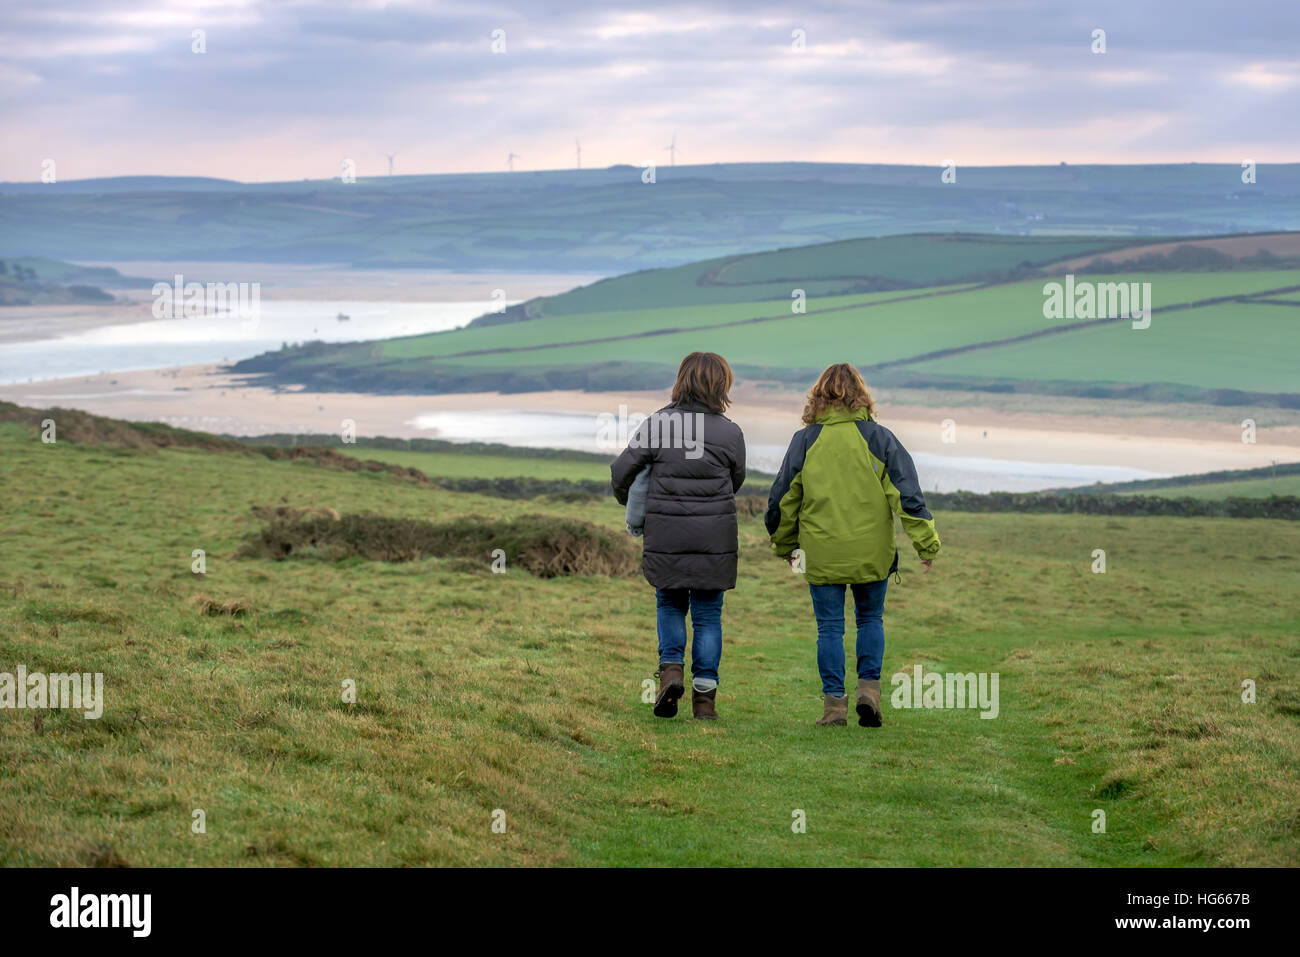 Two women walk at The Narrows near Padstow in Cornwall - Stock Image